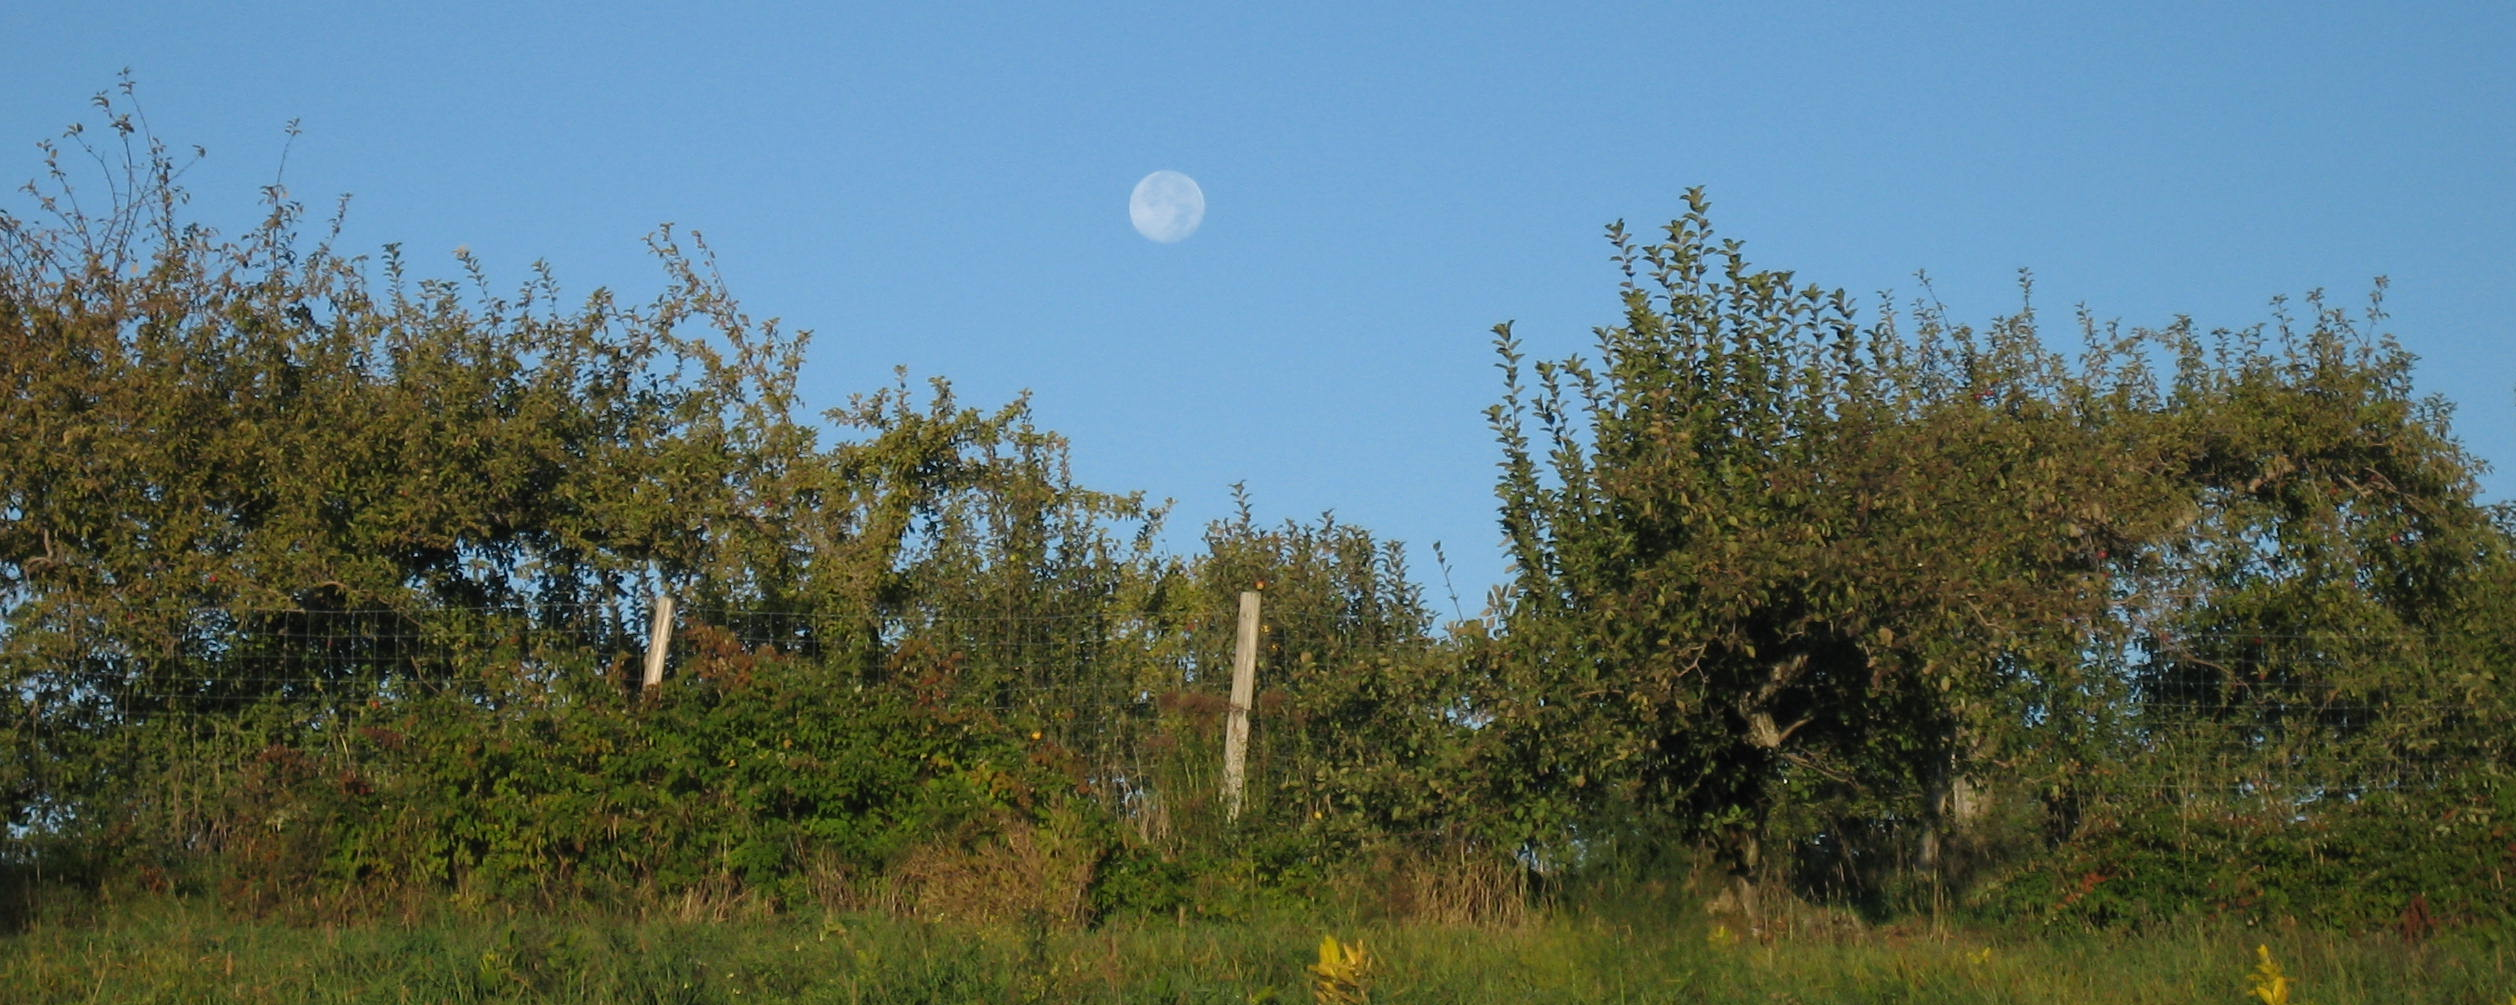 Moon over Shaker Orchard